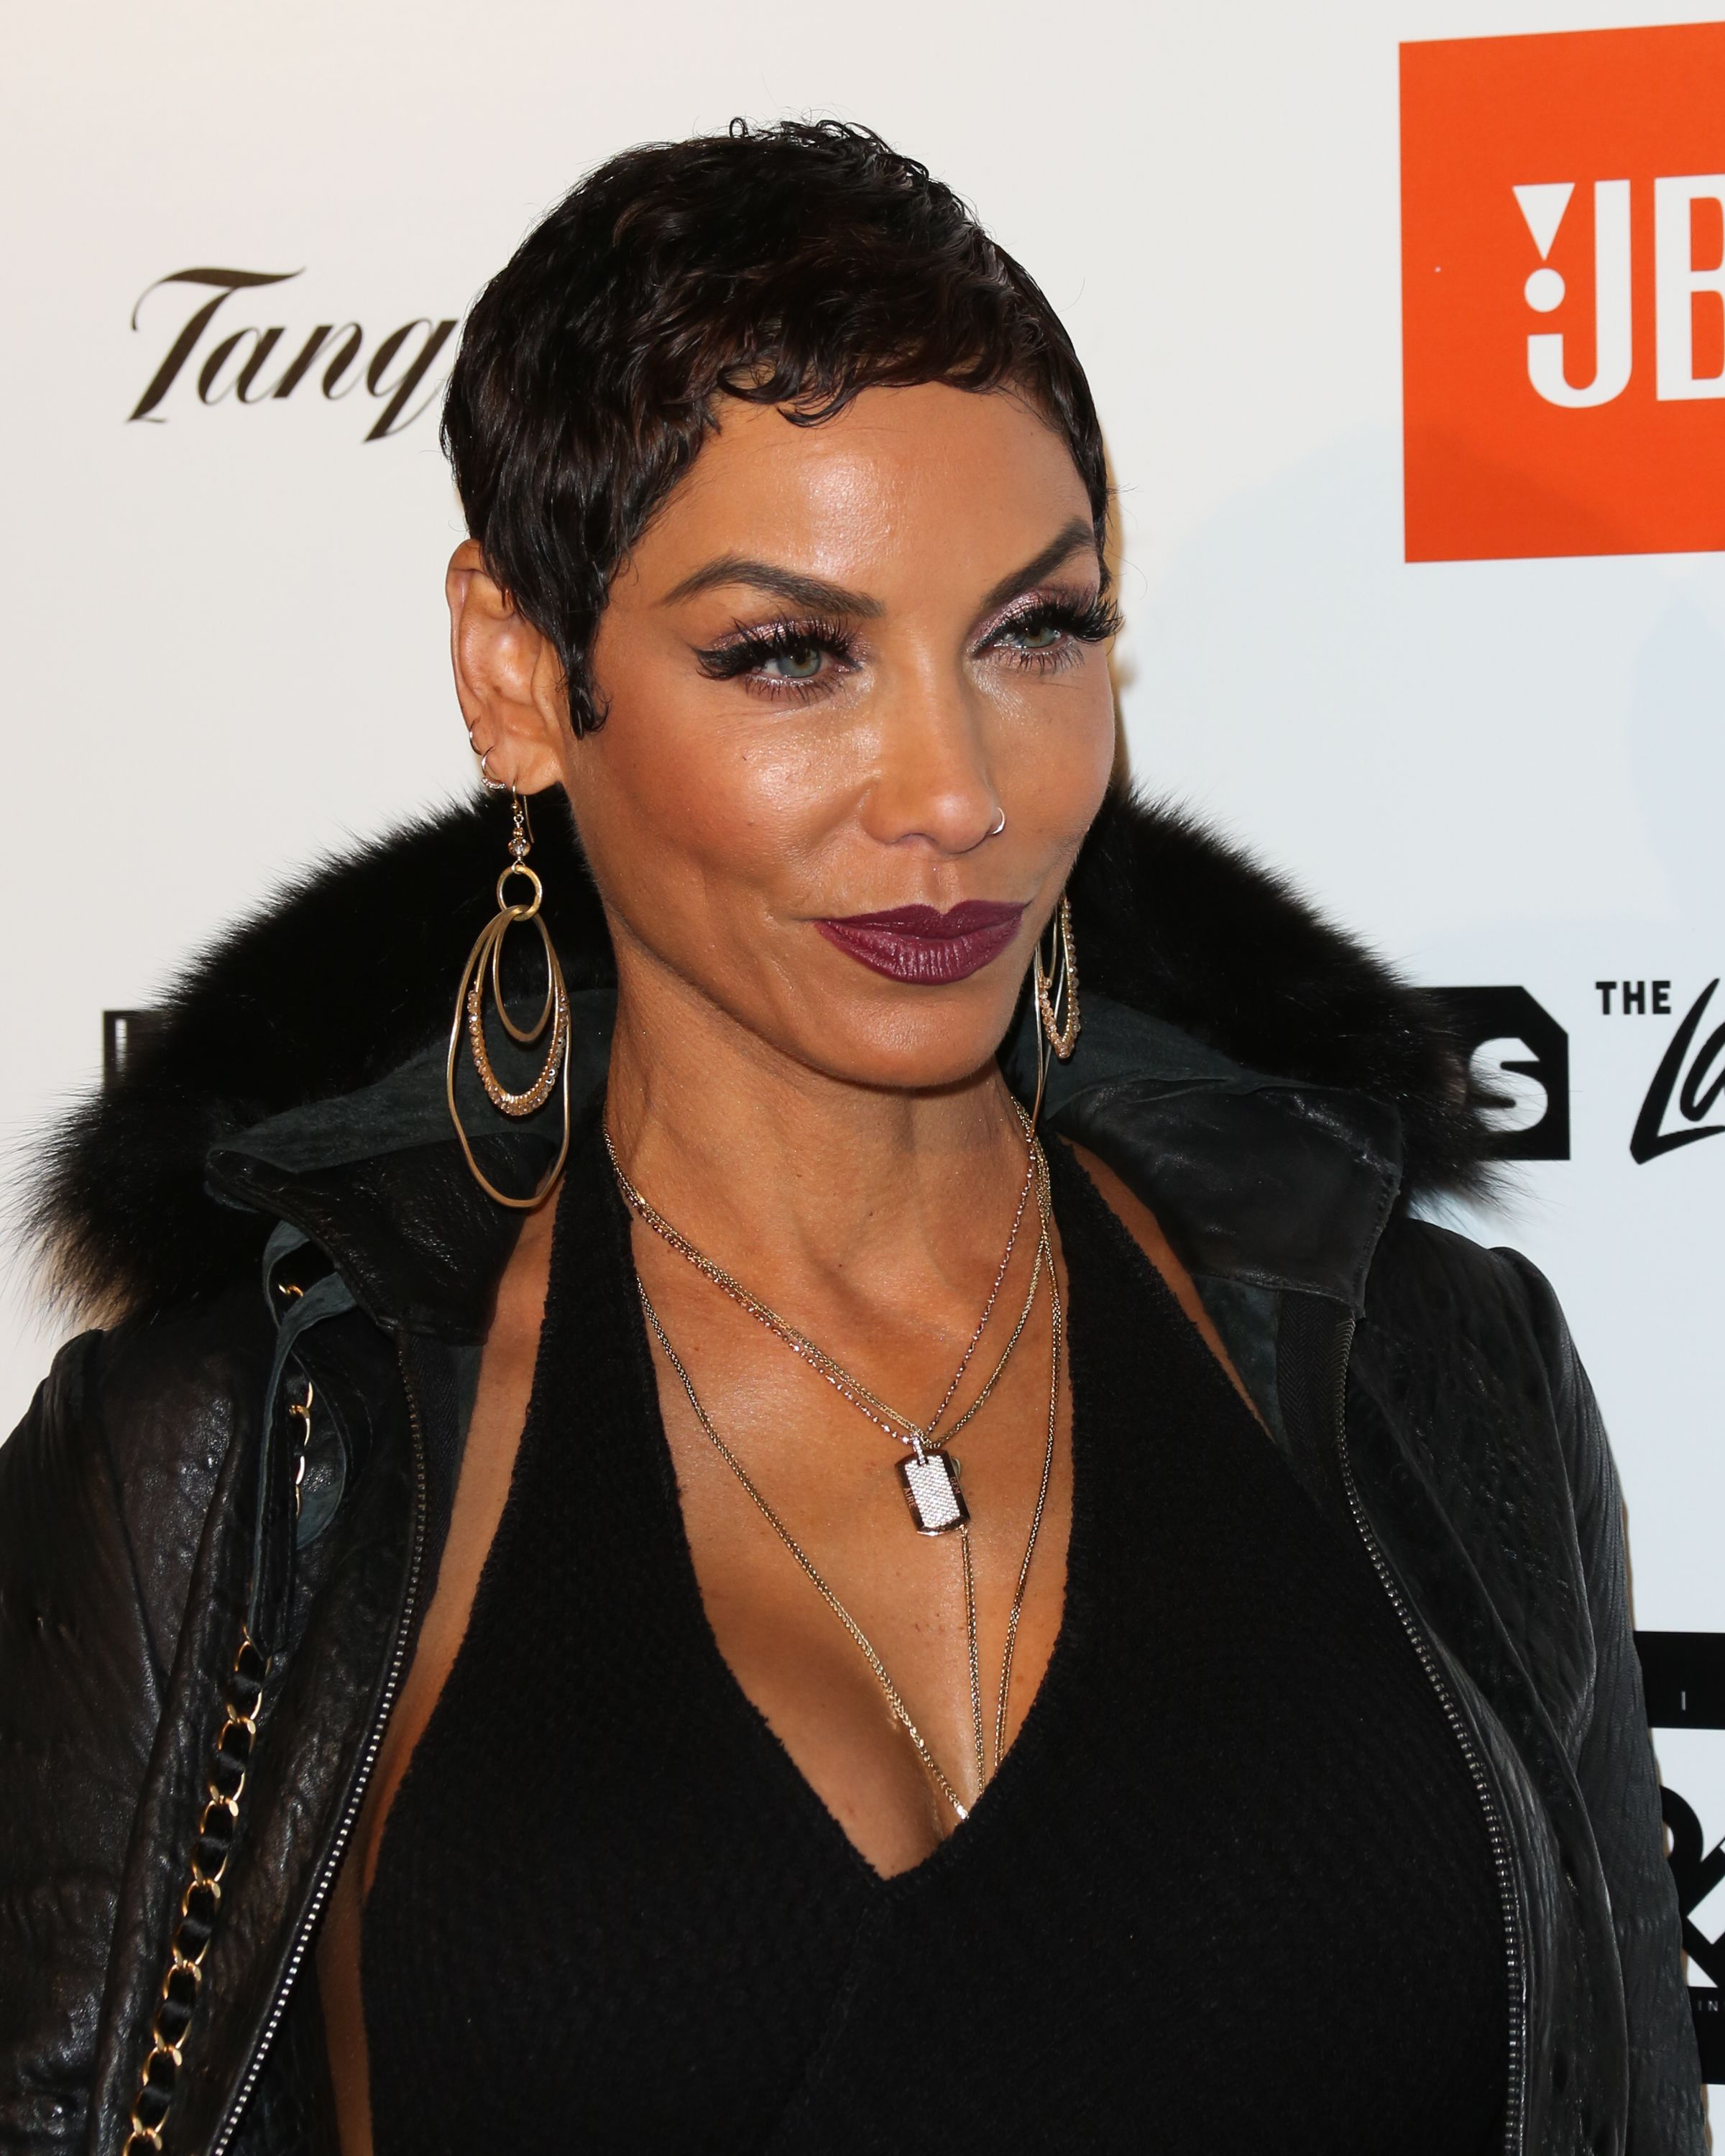 Nicole Murphy at Kenny 'The Jet' Smith's annual All-Star bash on Feb. 16, 2018 in California. | Photo: Getty Images